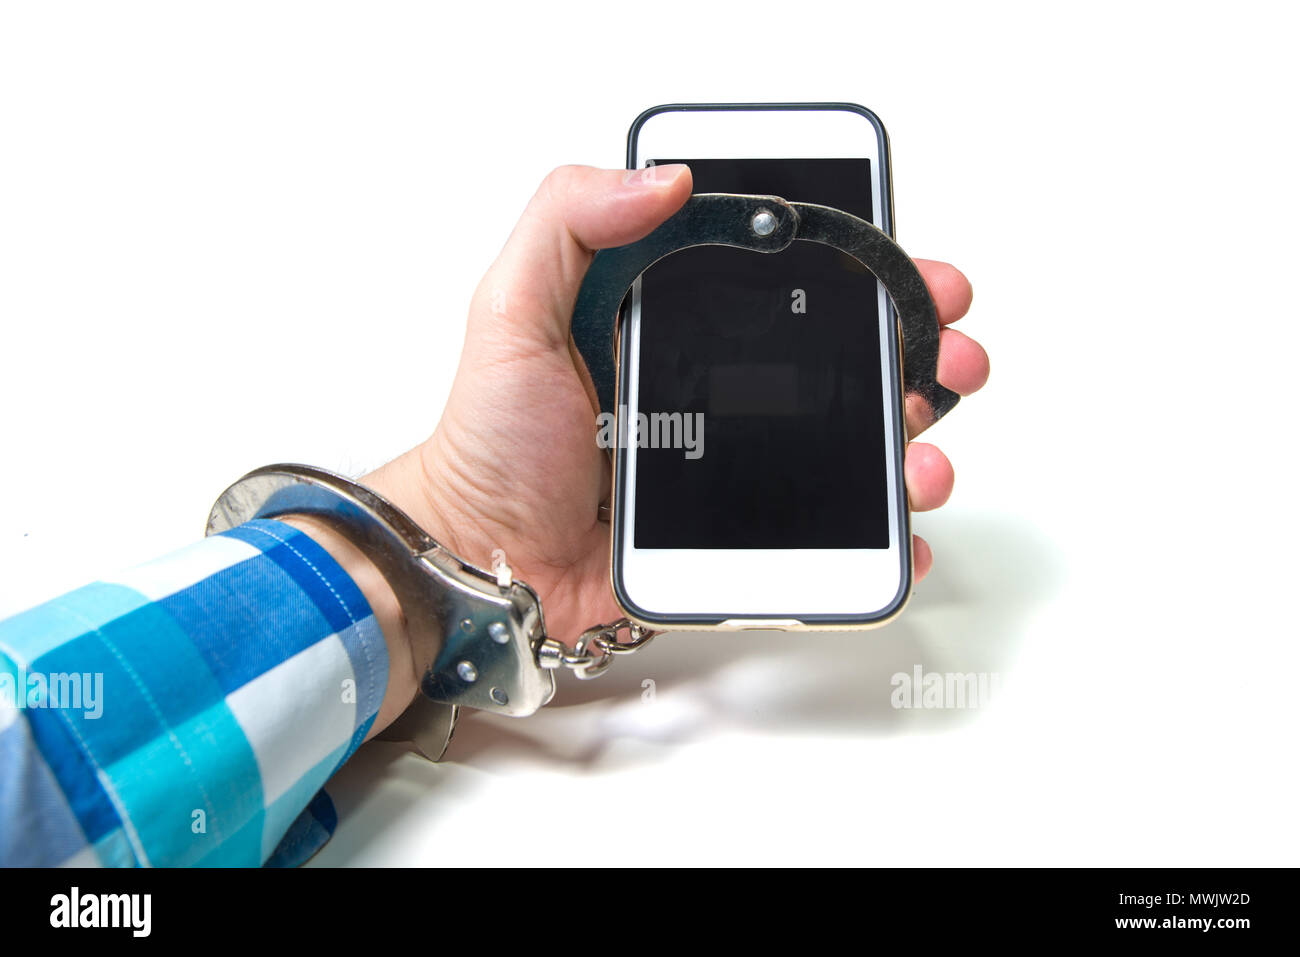 A man handcuffed to a white telephone. Addiction to the online world. The concept of human attachment to the phone. A global problem with the cyber wo - Stock Image